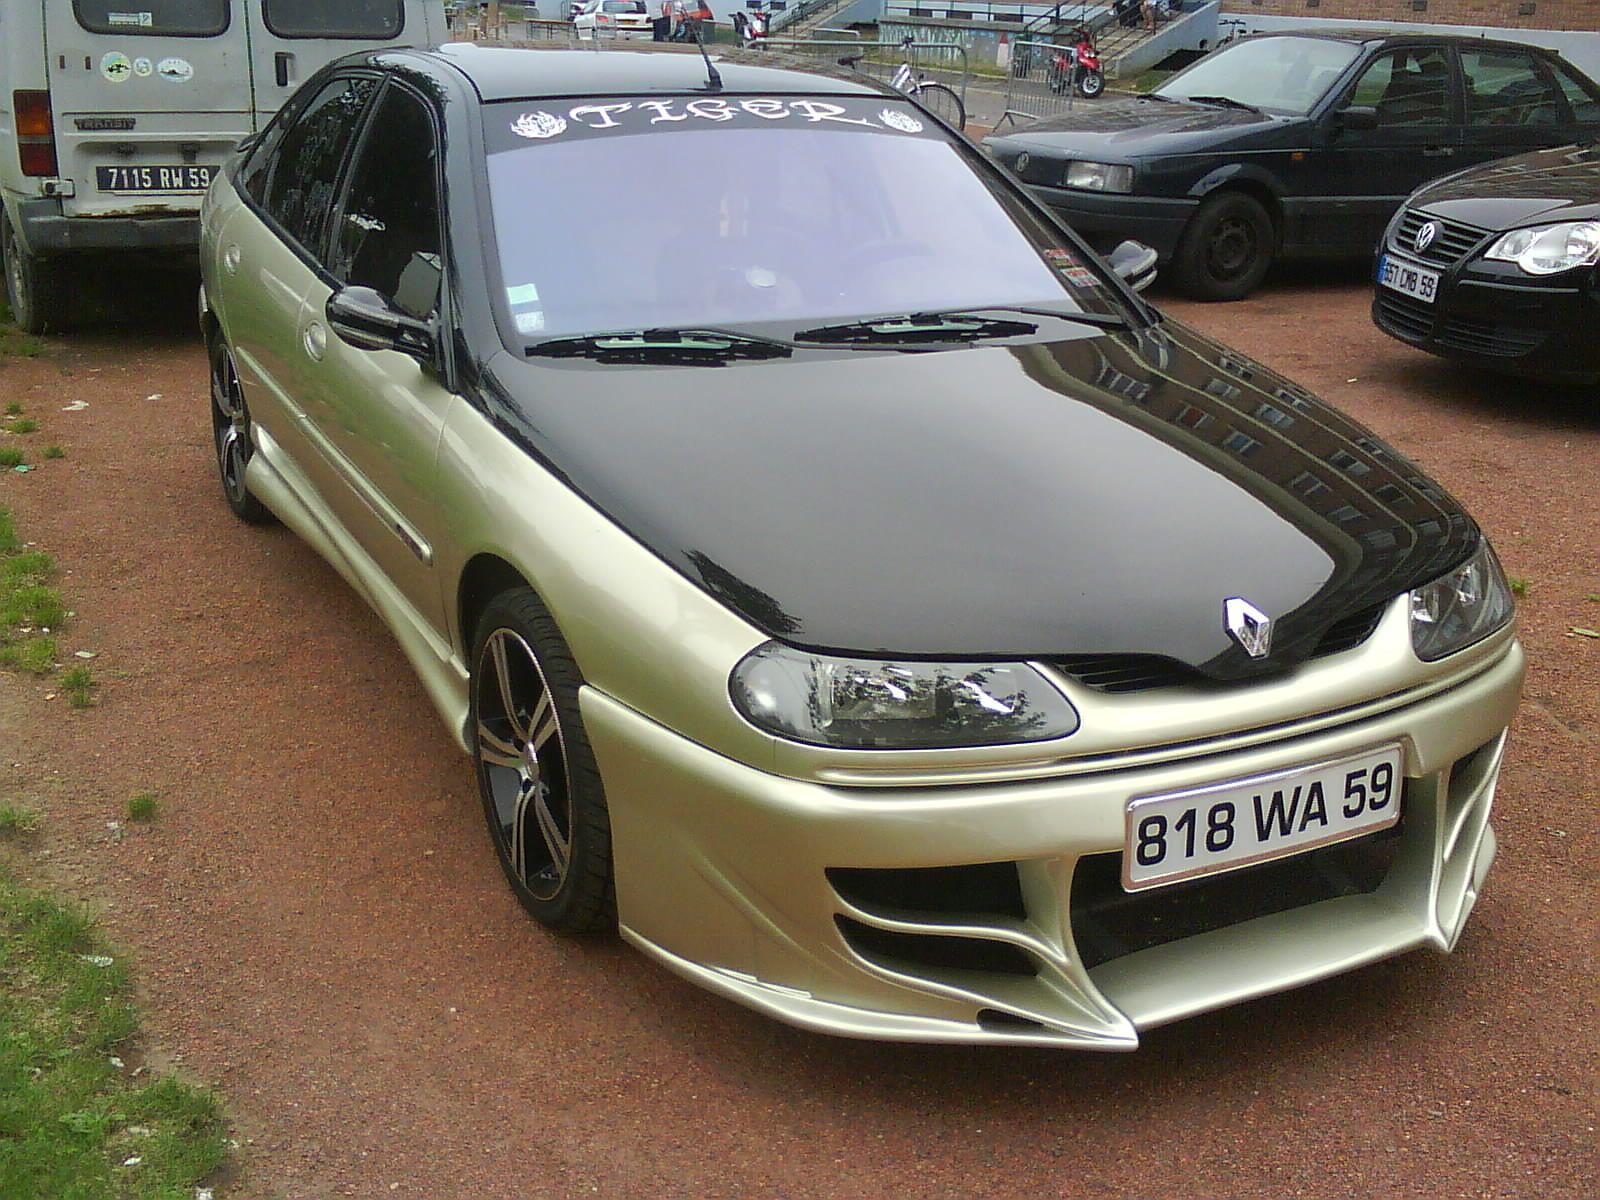 Voiture tuning laguna page 2 - Voiture tuning images ...